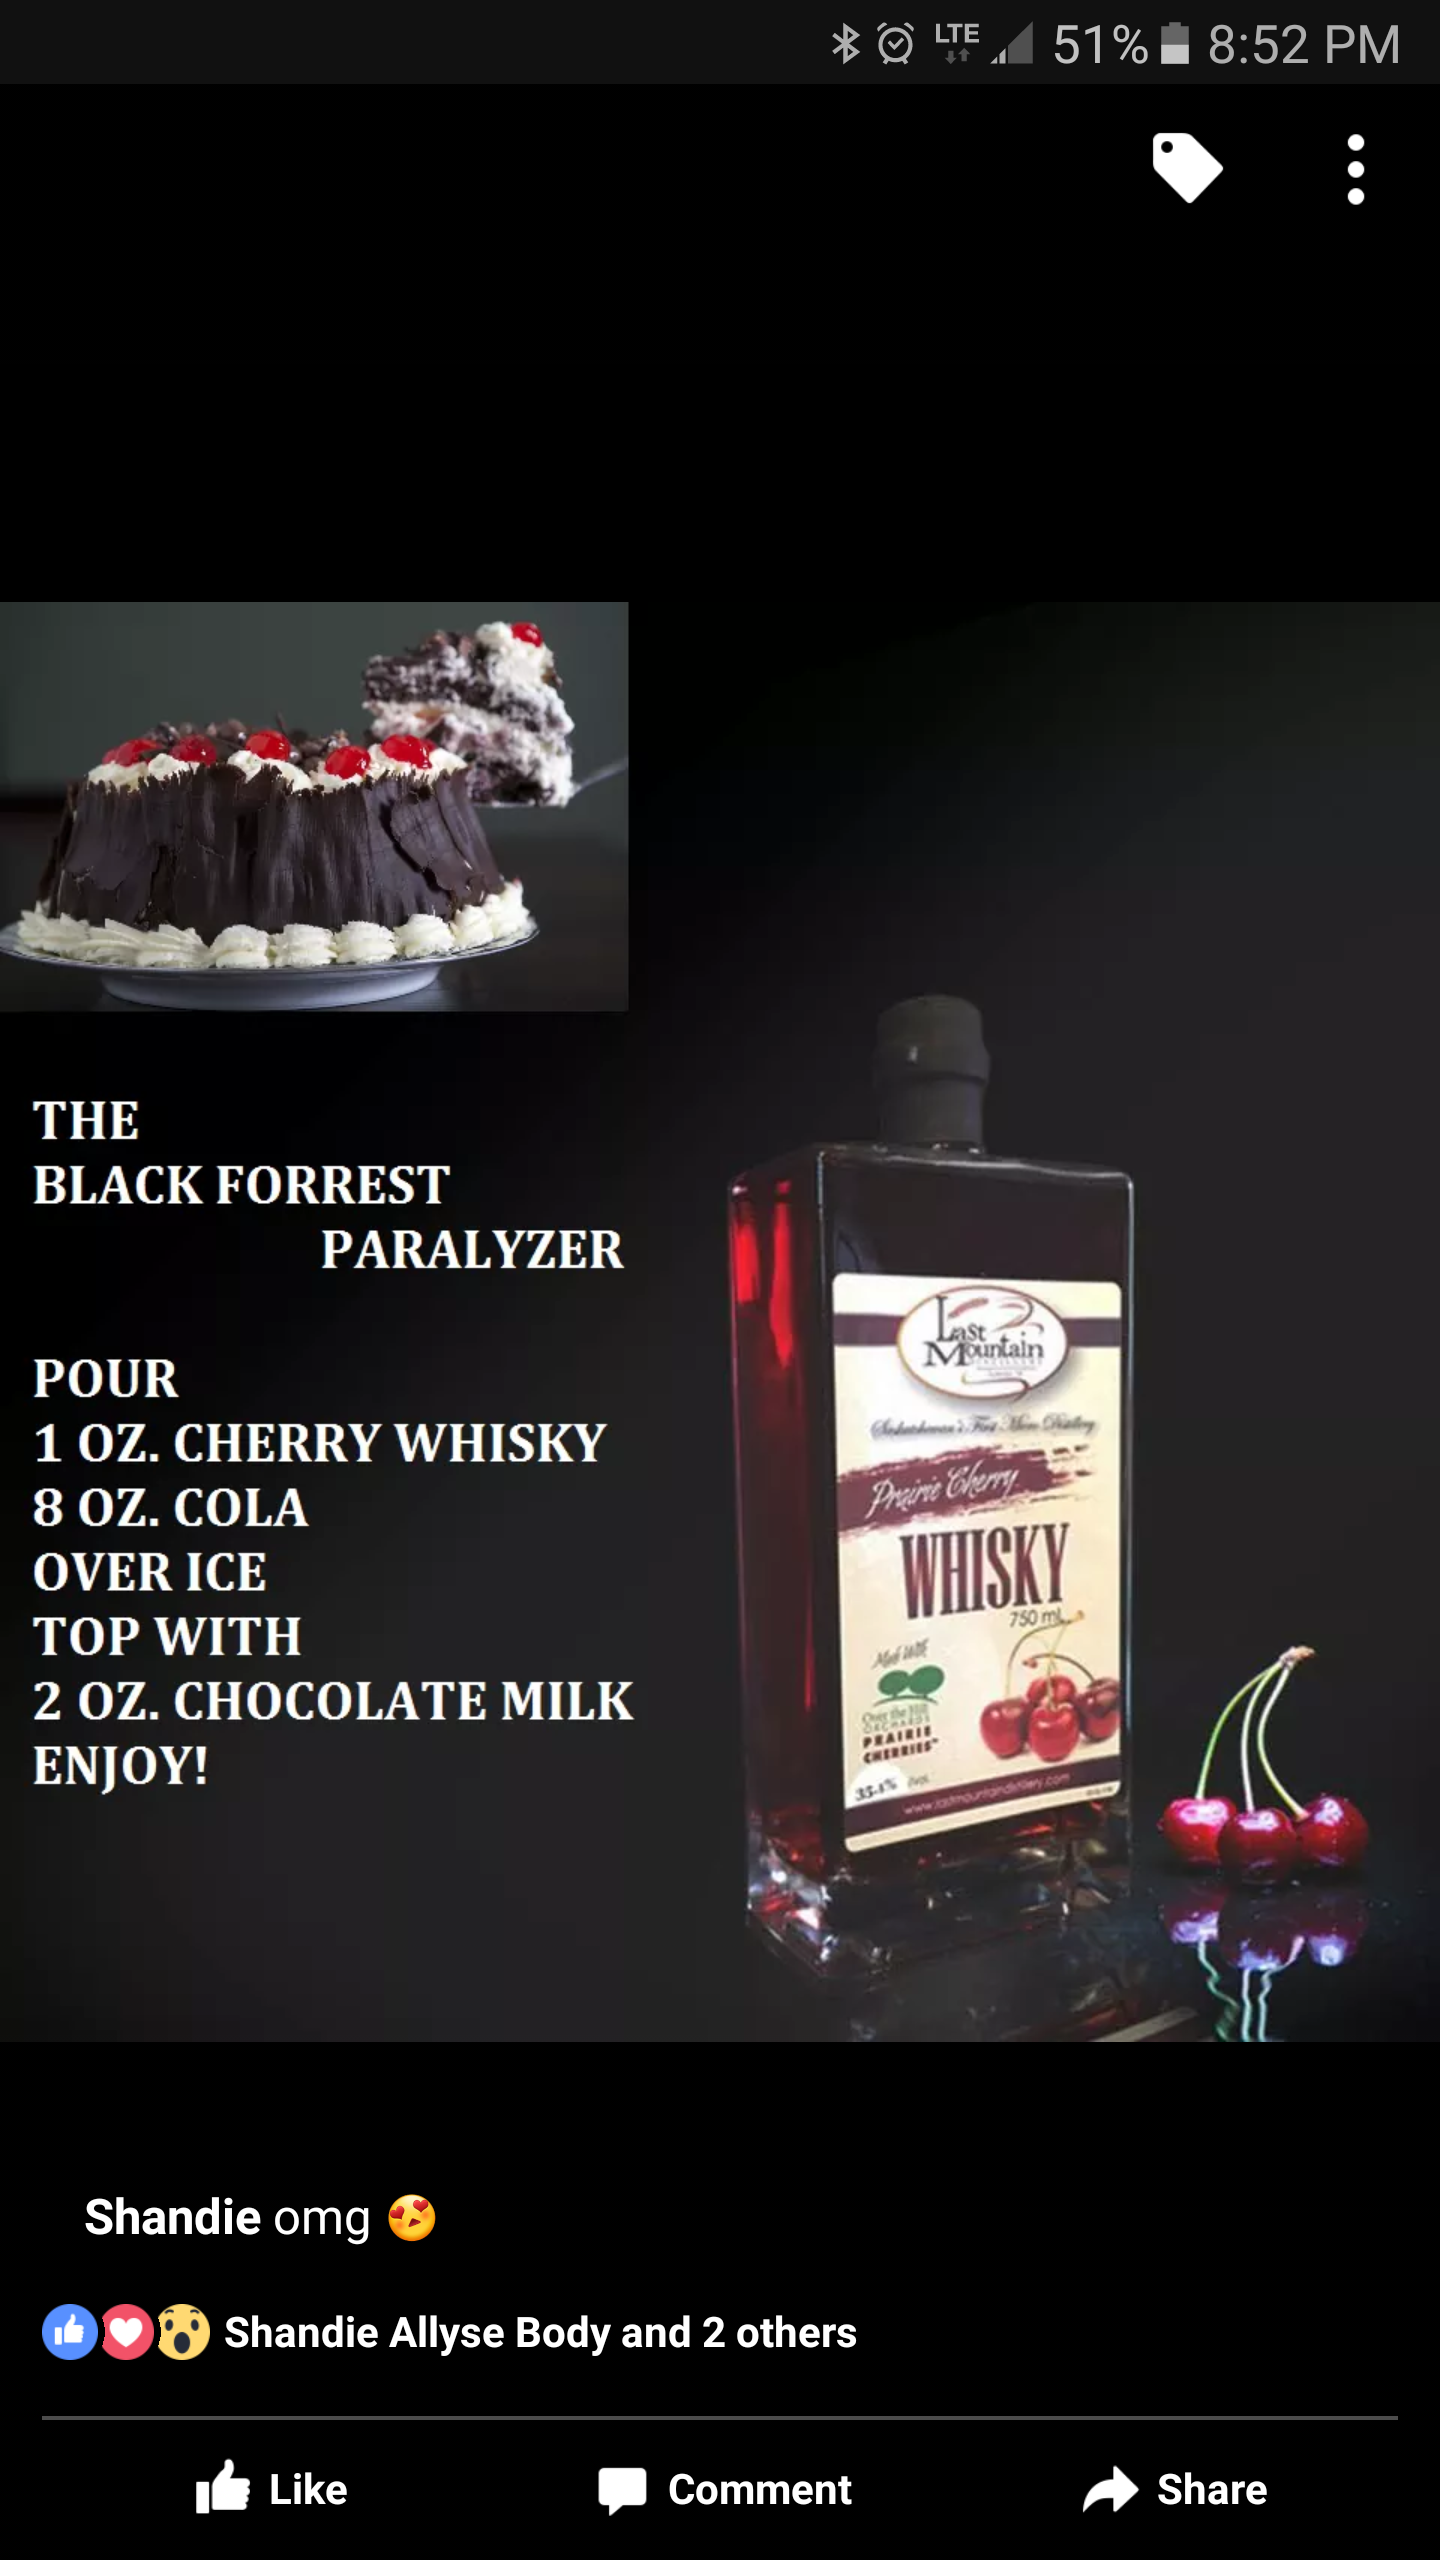 Black Forest Payalyzer